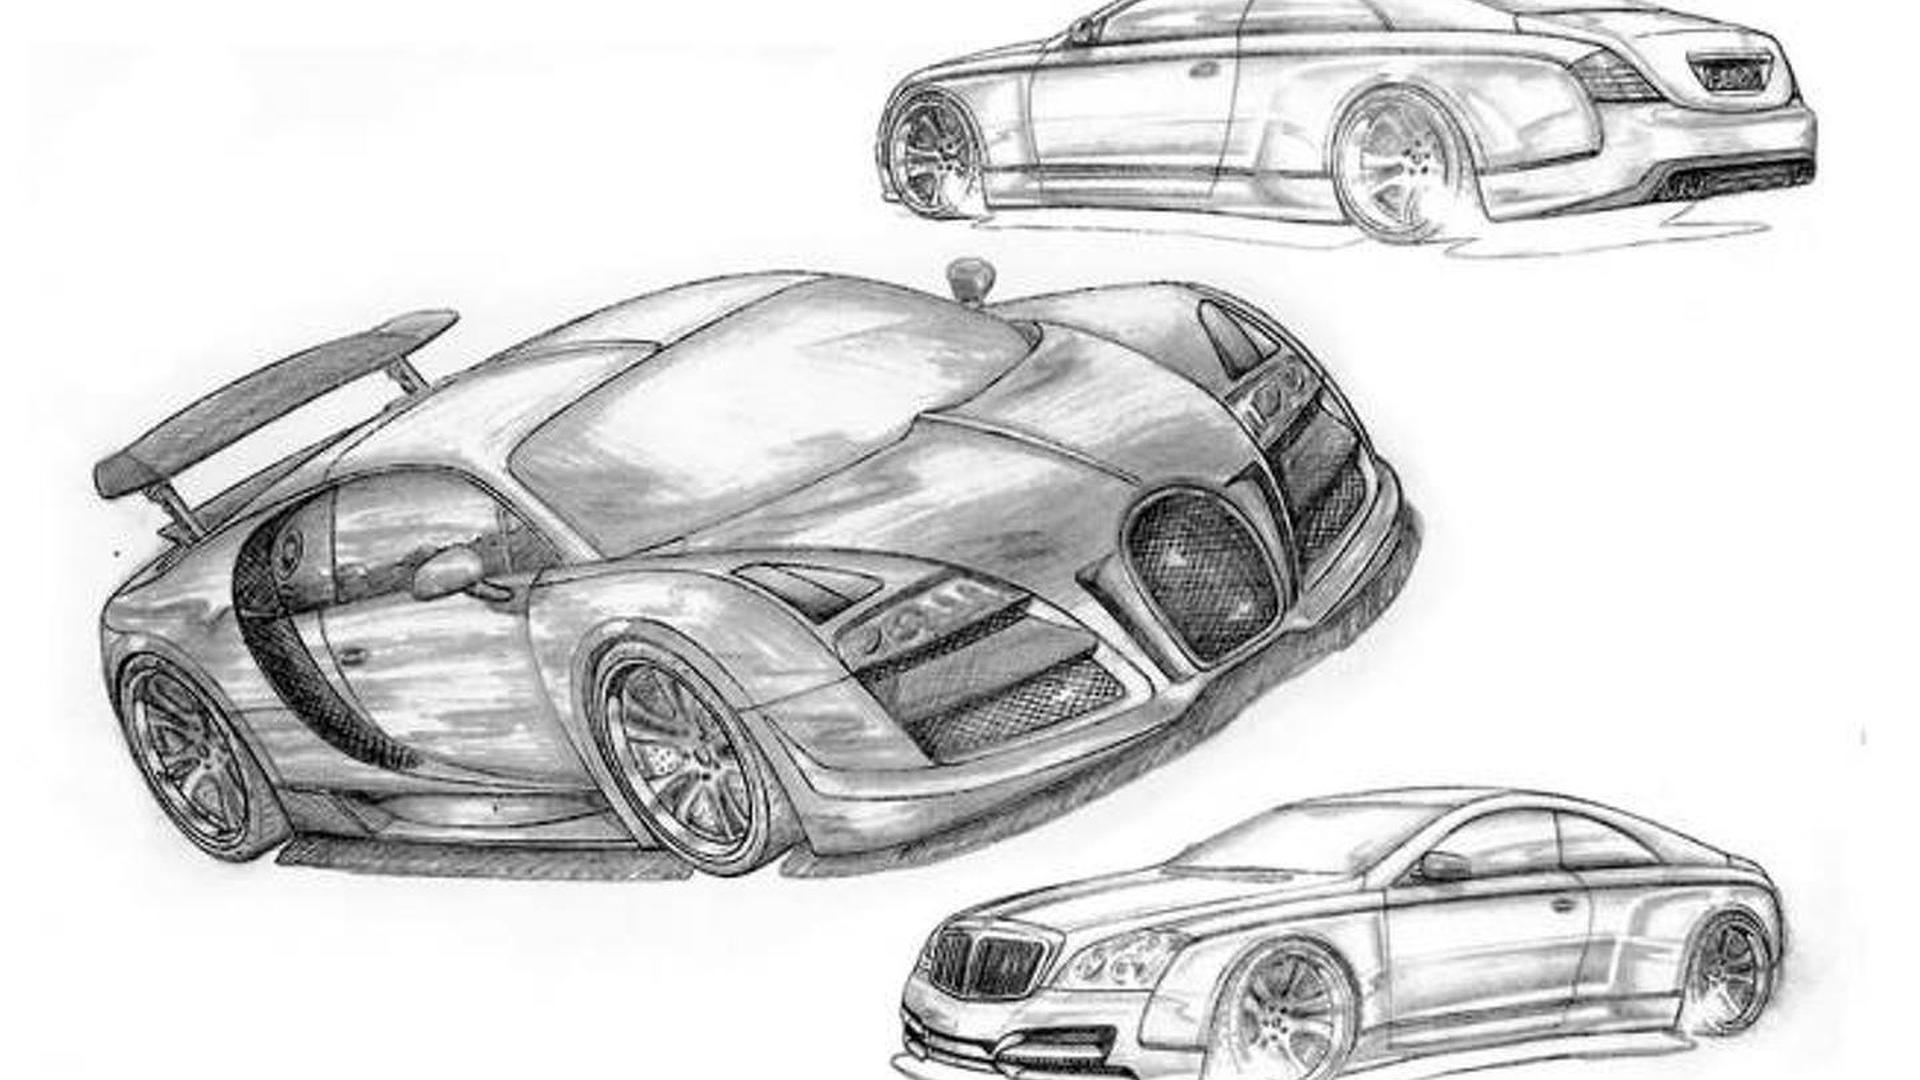 FAB Design working on a Bugatti Veyron and Maybach Coupe?